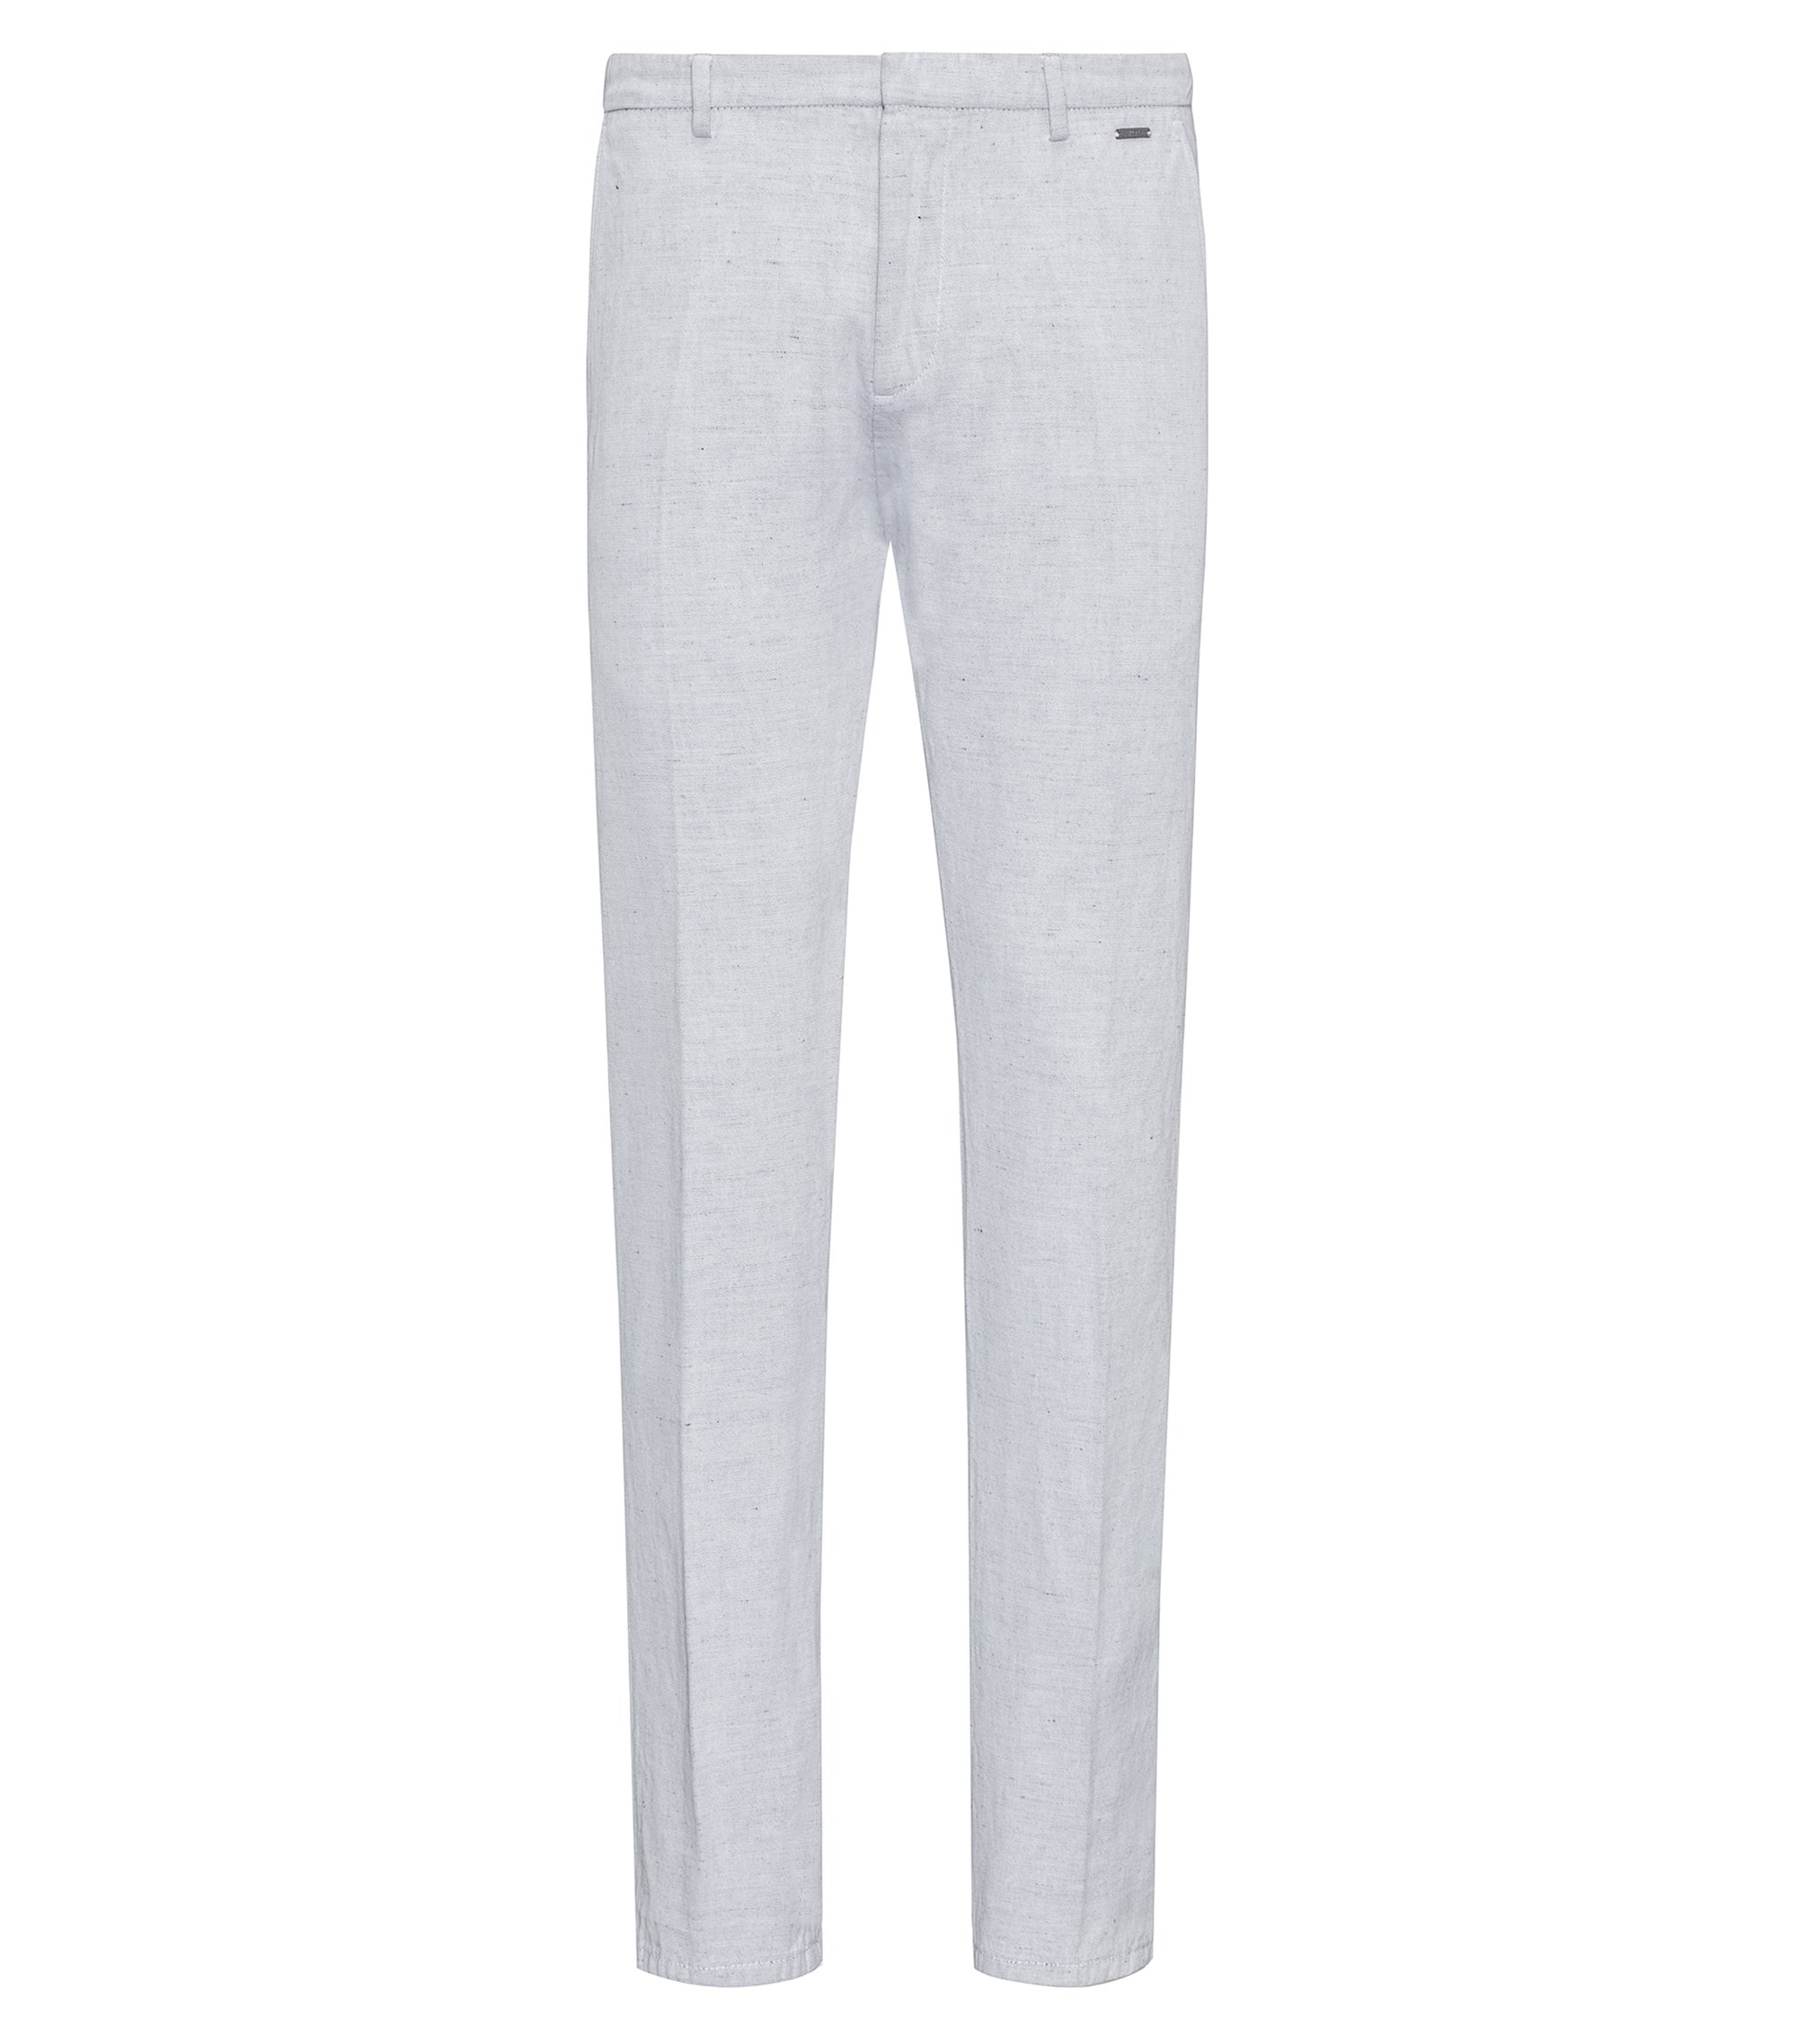 Cotton-Linen Pant, Tapered Fit | Helgo, White